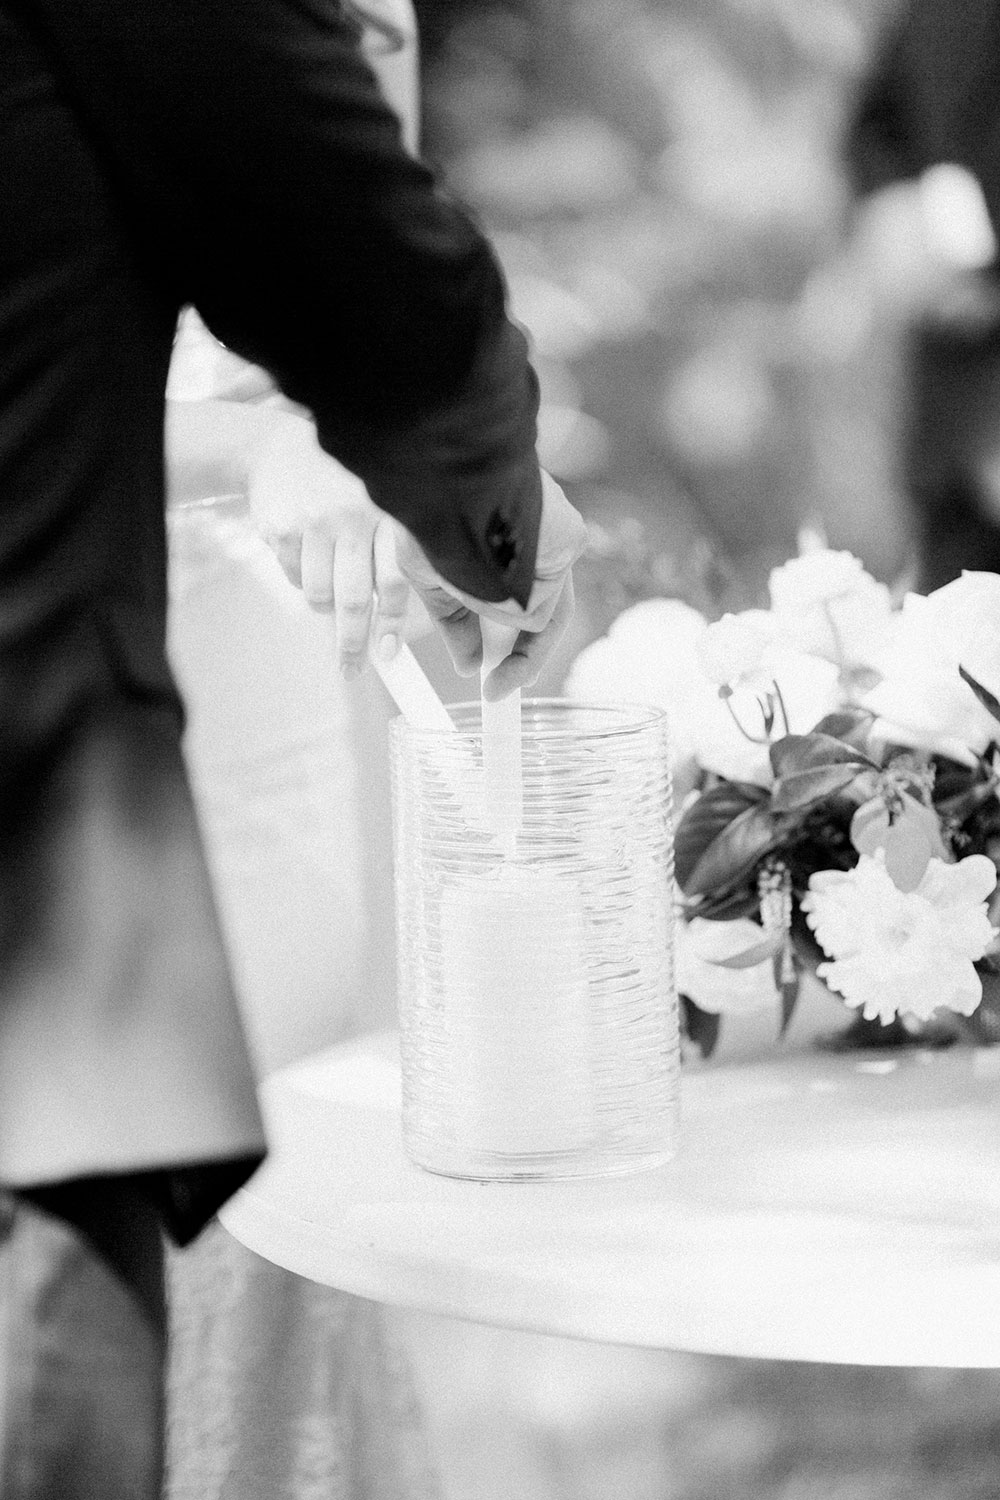 kurtz-orchards-wedding-gracewood-estate-niagara-on-the-lake-photo-by-katie-nicolle-photography-0024.JPG